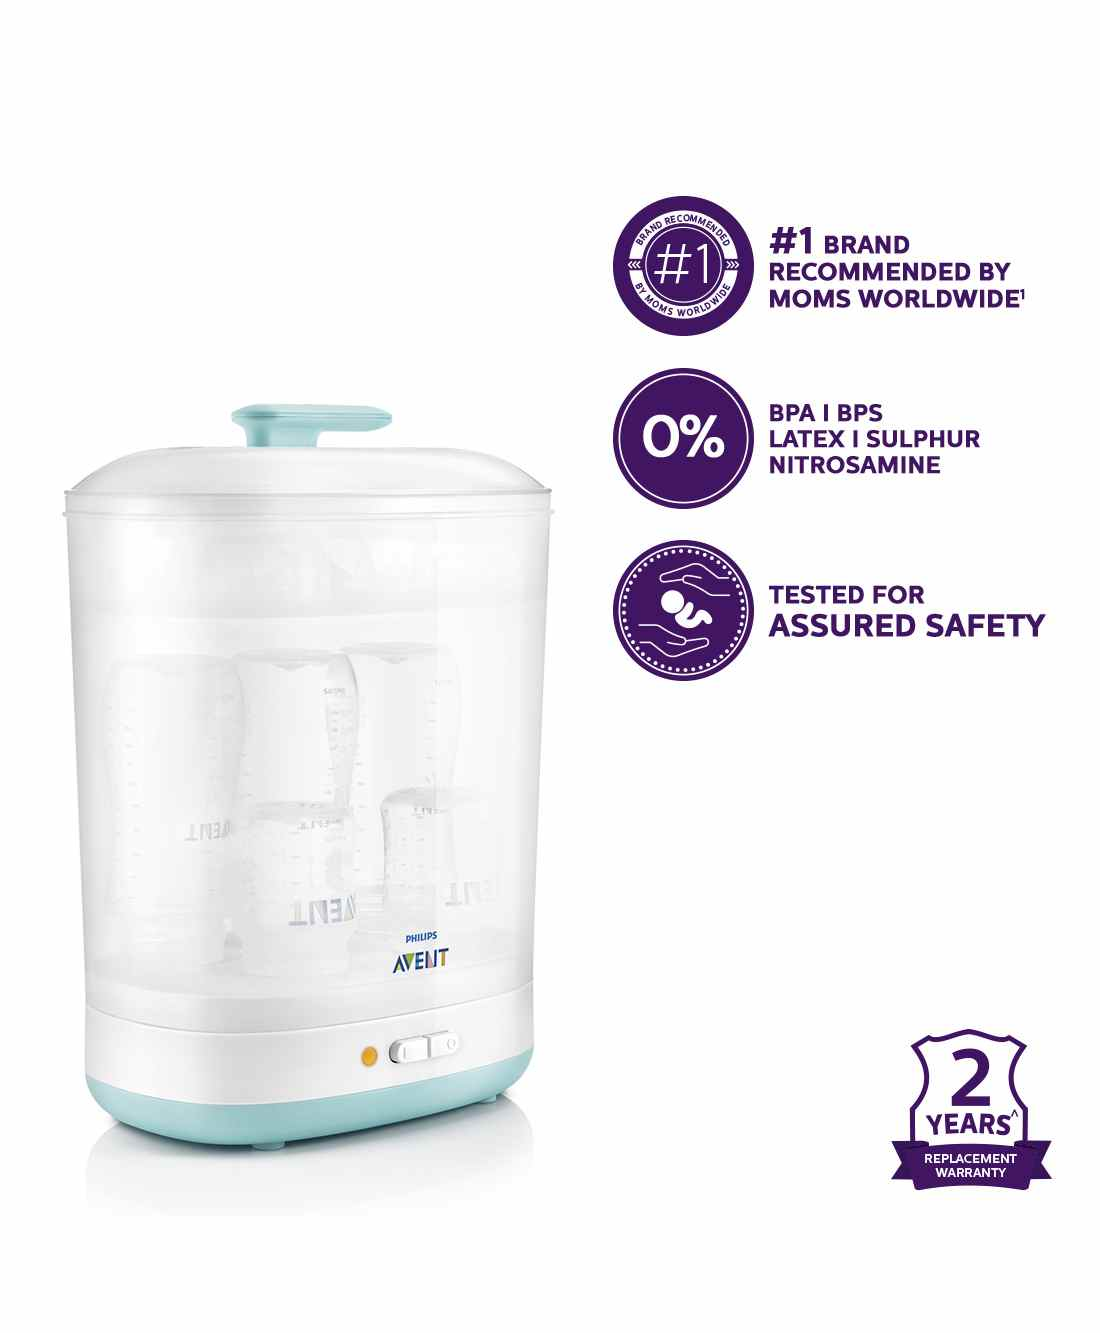 Avent 2 In 1 Electric Steam Slim Sterilizer Online India Buy At Philips New Natural Skin Soft Nipple Pack Medium Flow 3m Small Of 20924 Per Diaper